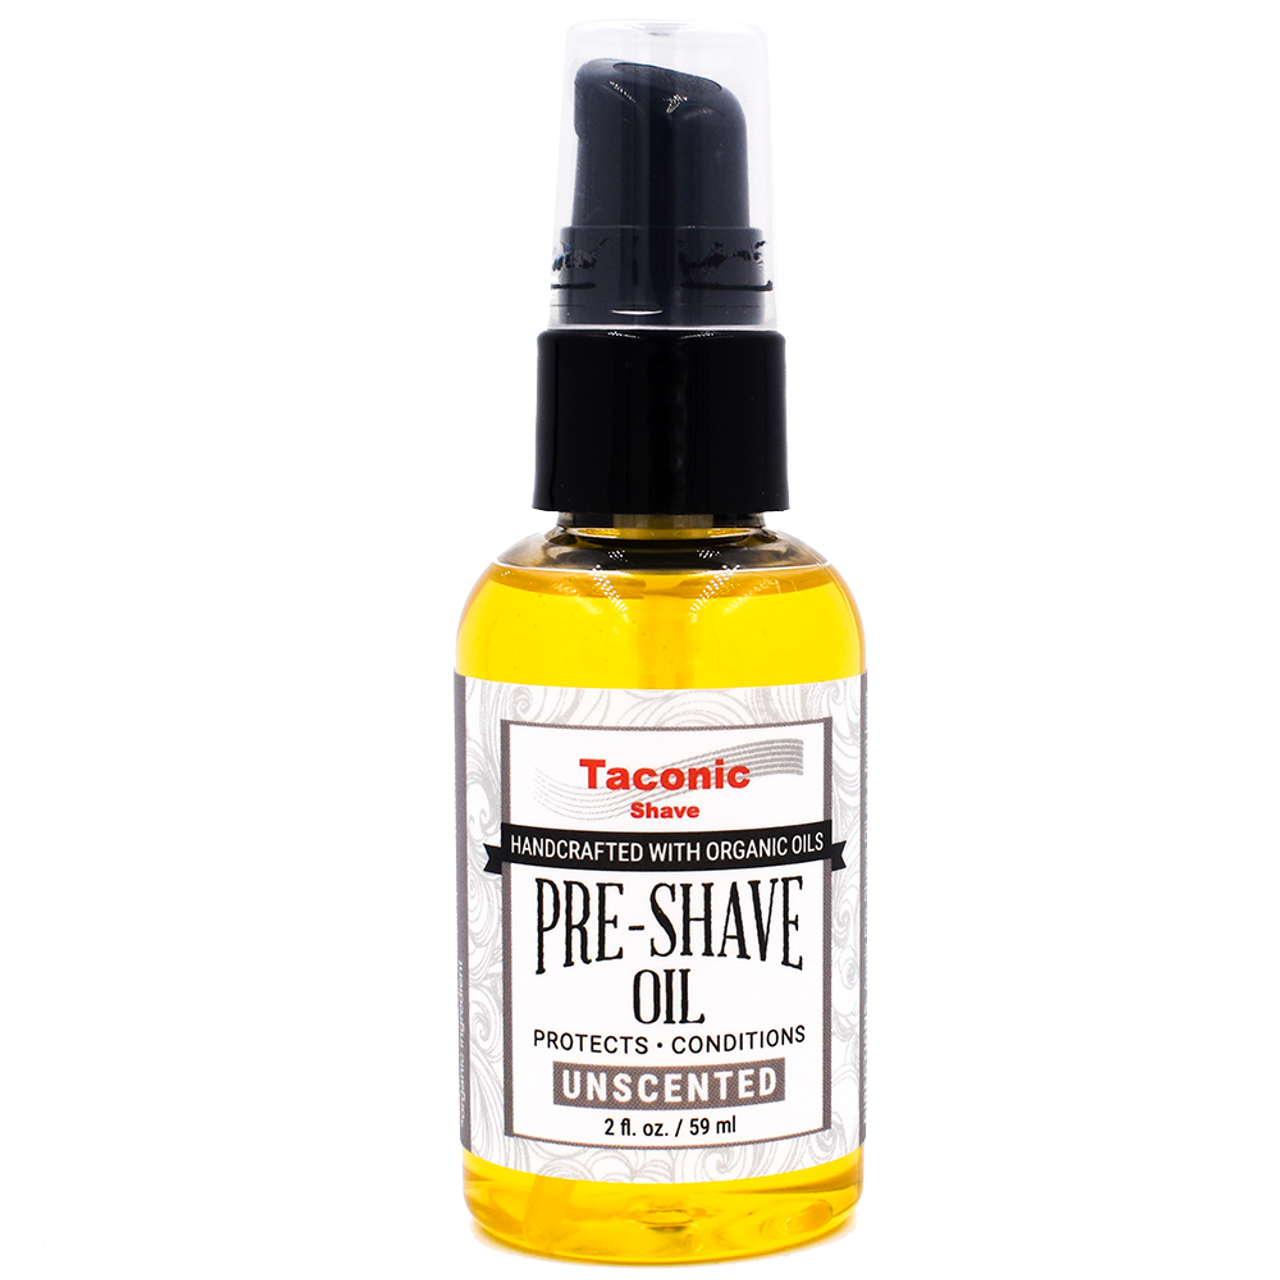 Taconic Pre-Shave Oil Unscented